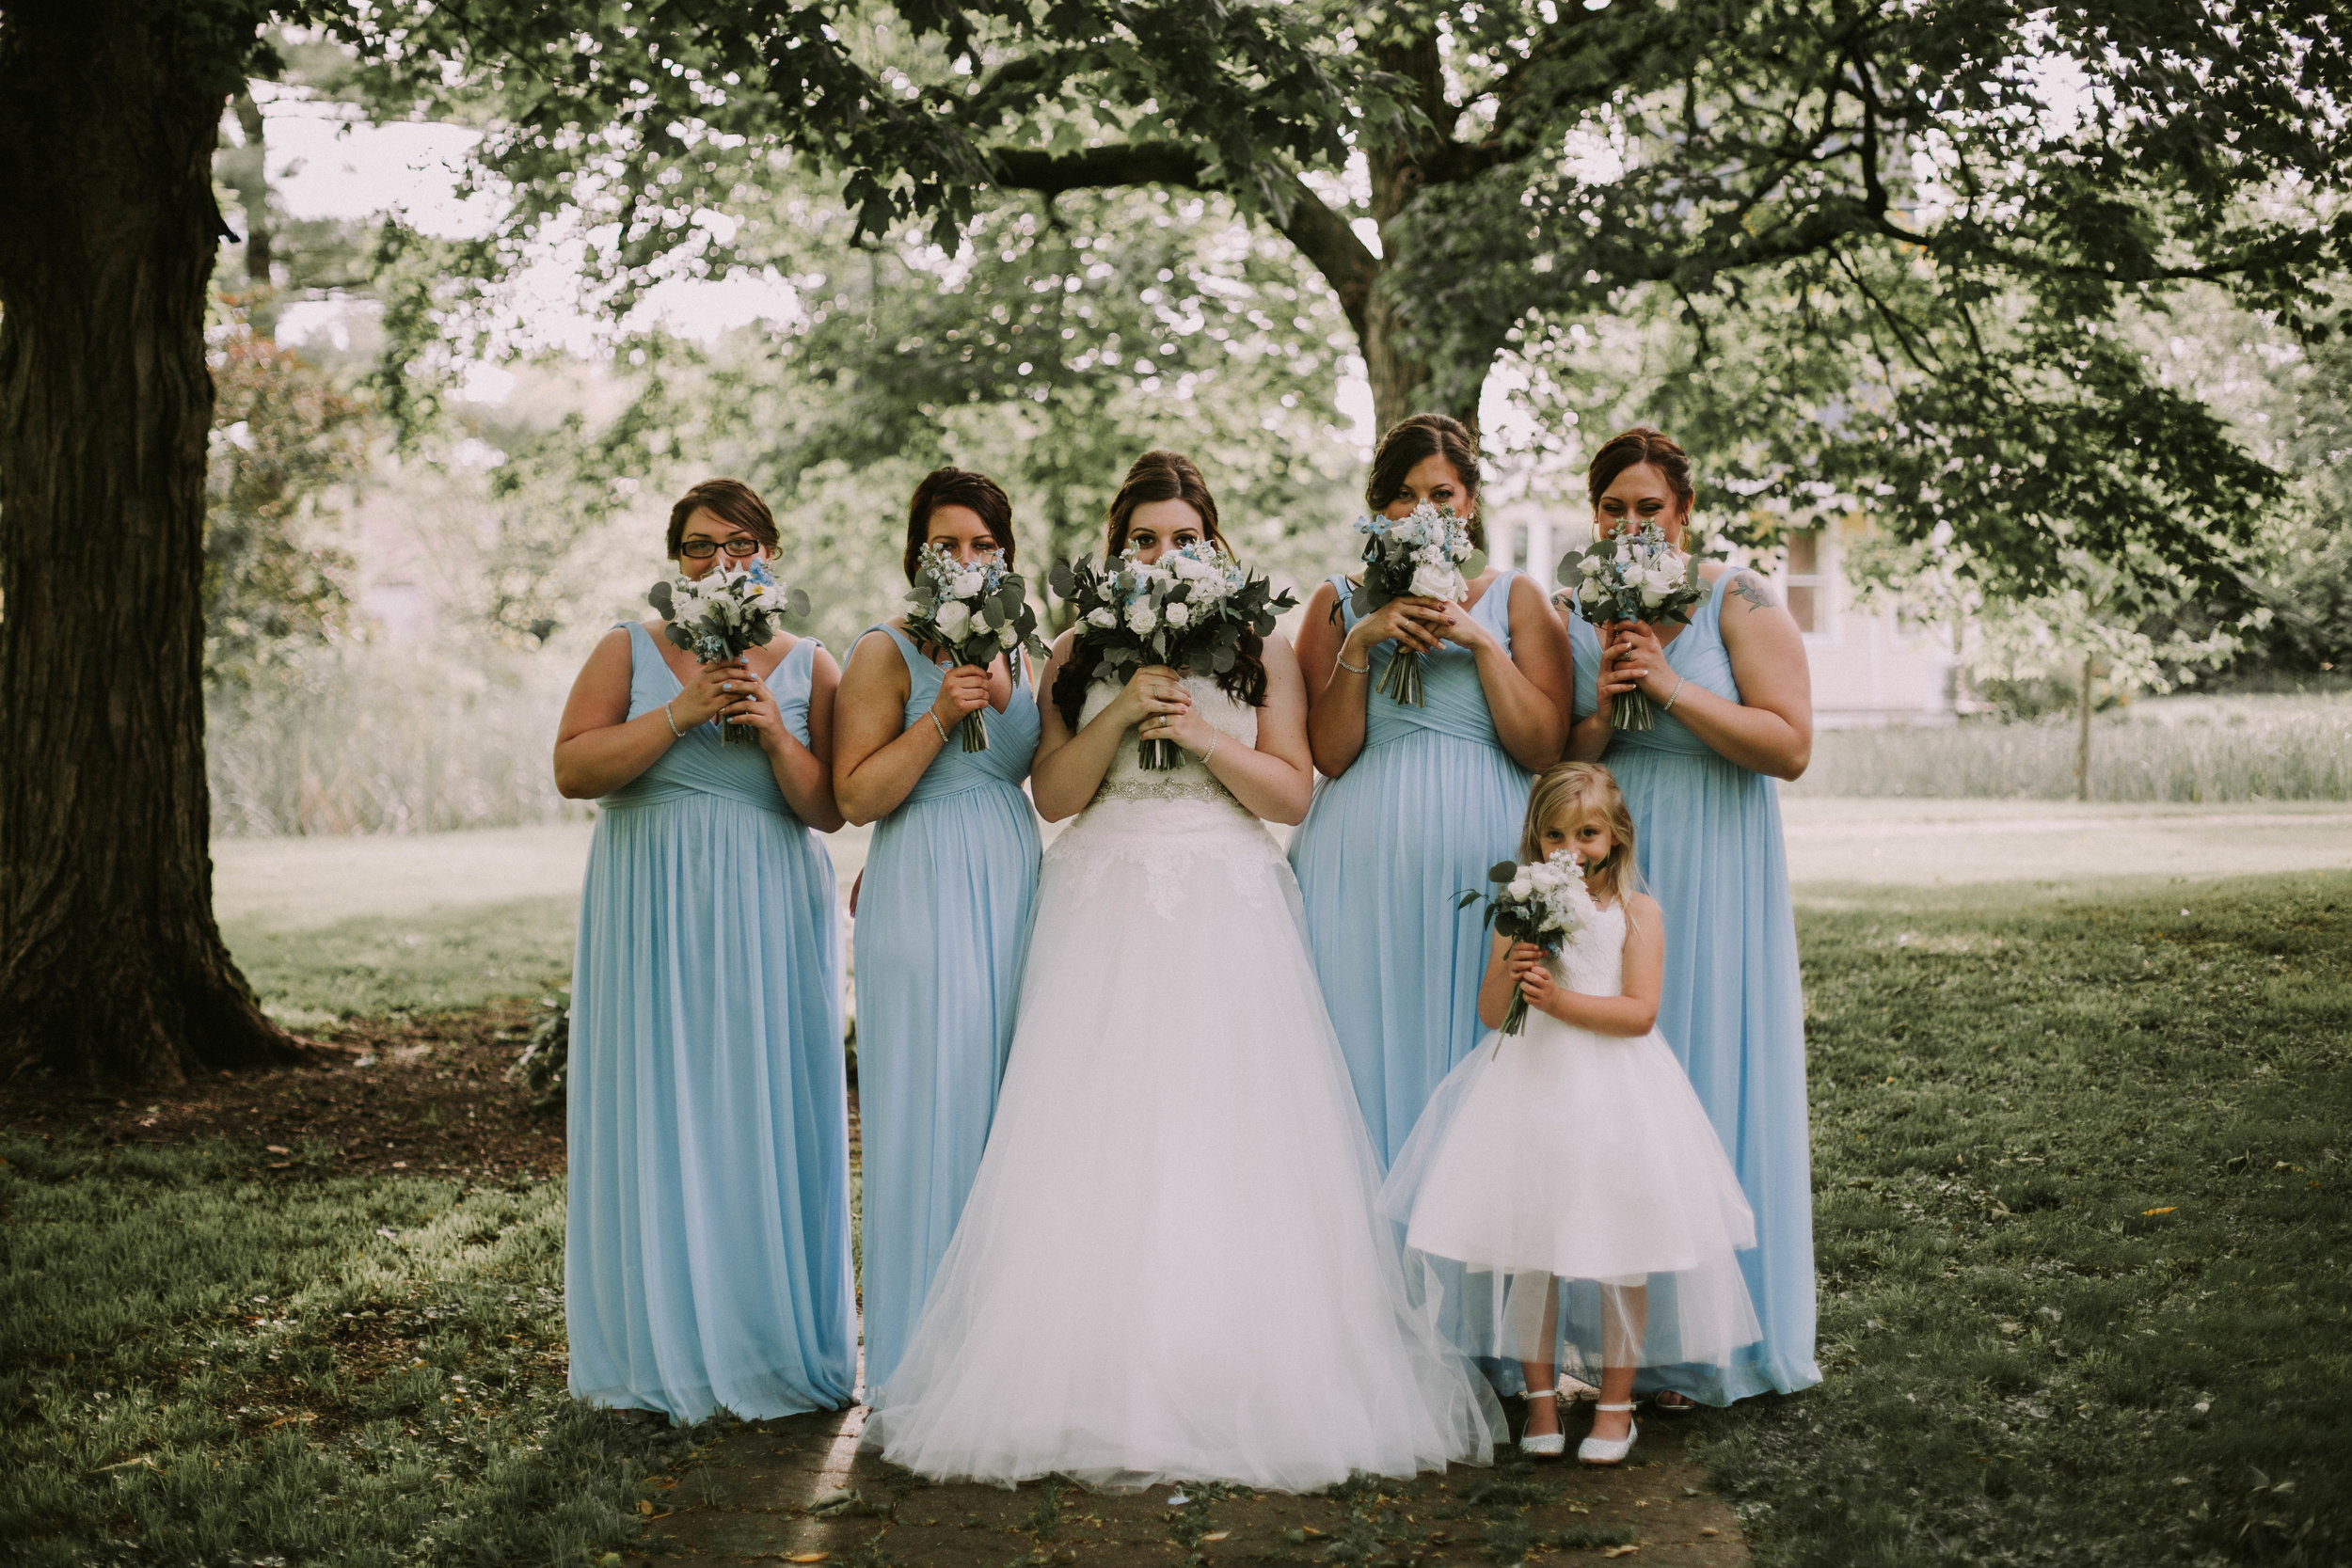 Blue and White Bridesmaids